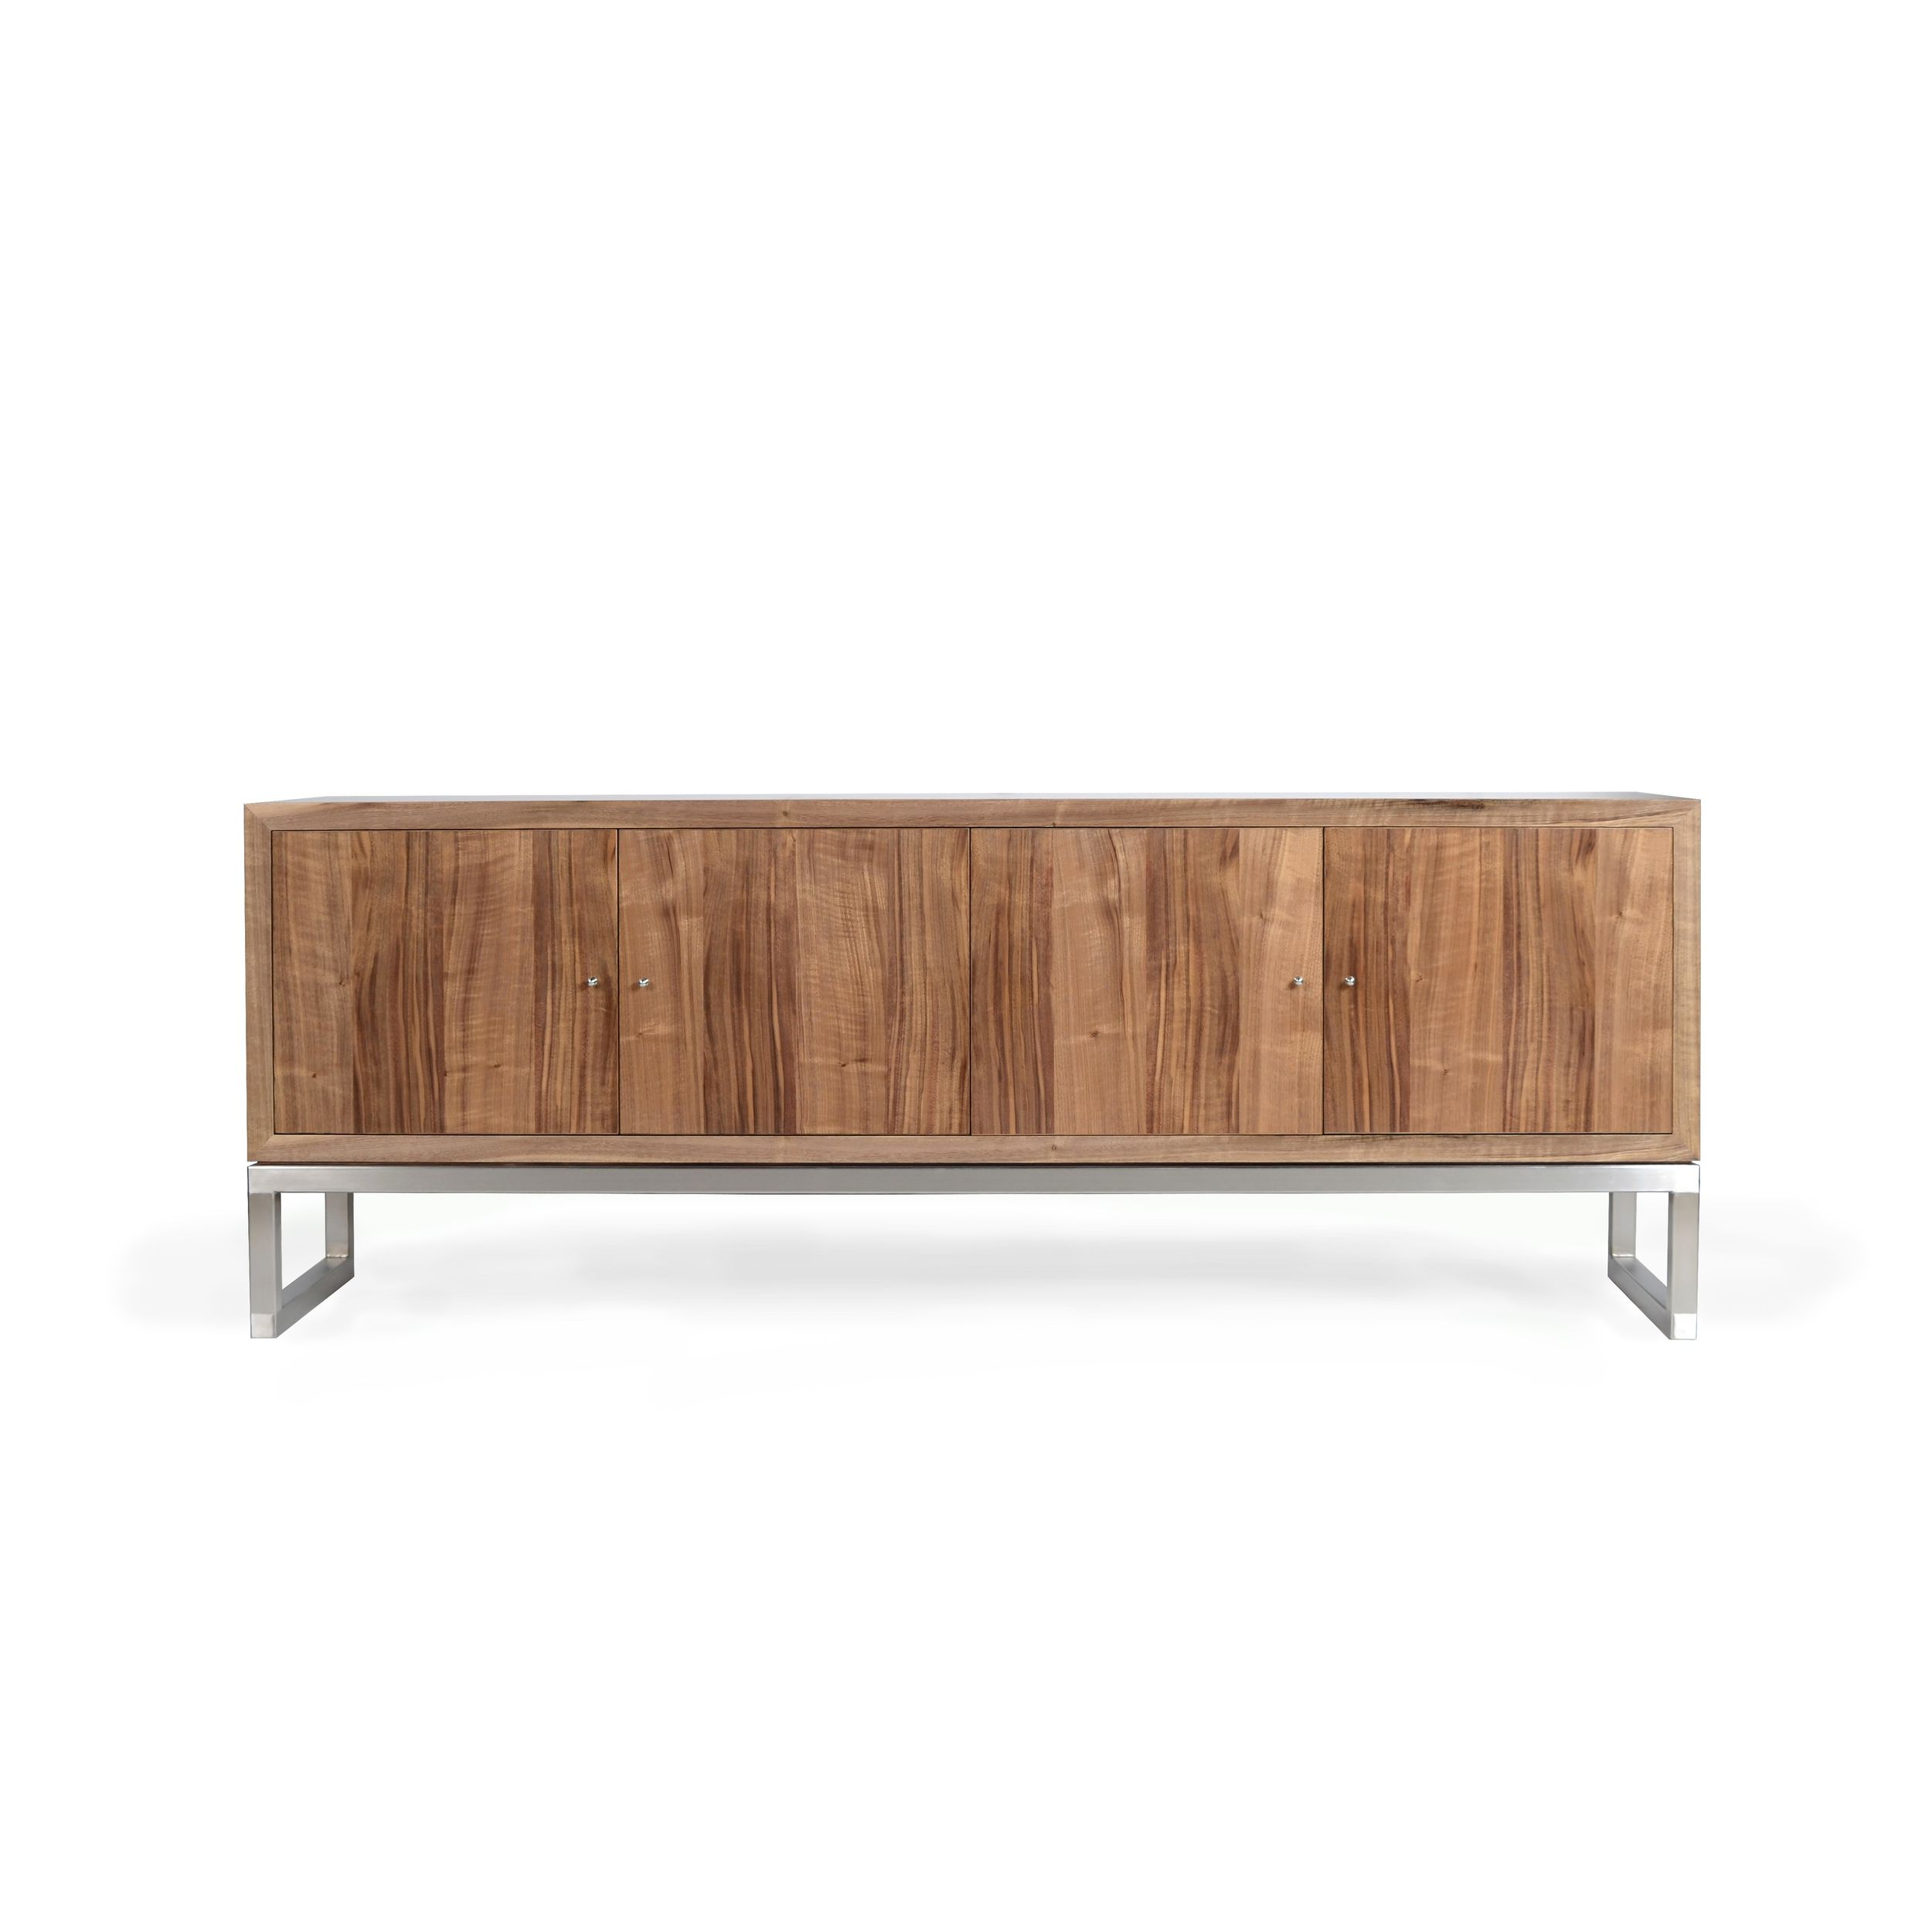 Horizon Sideboard Is Shown With A Satin Polished Stainless Steel